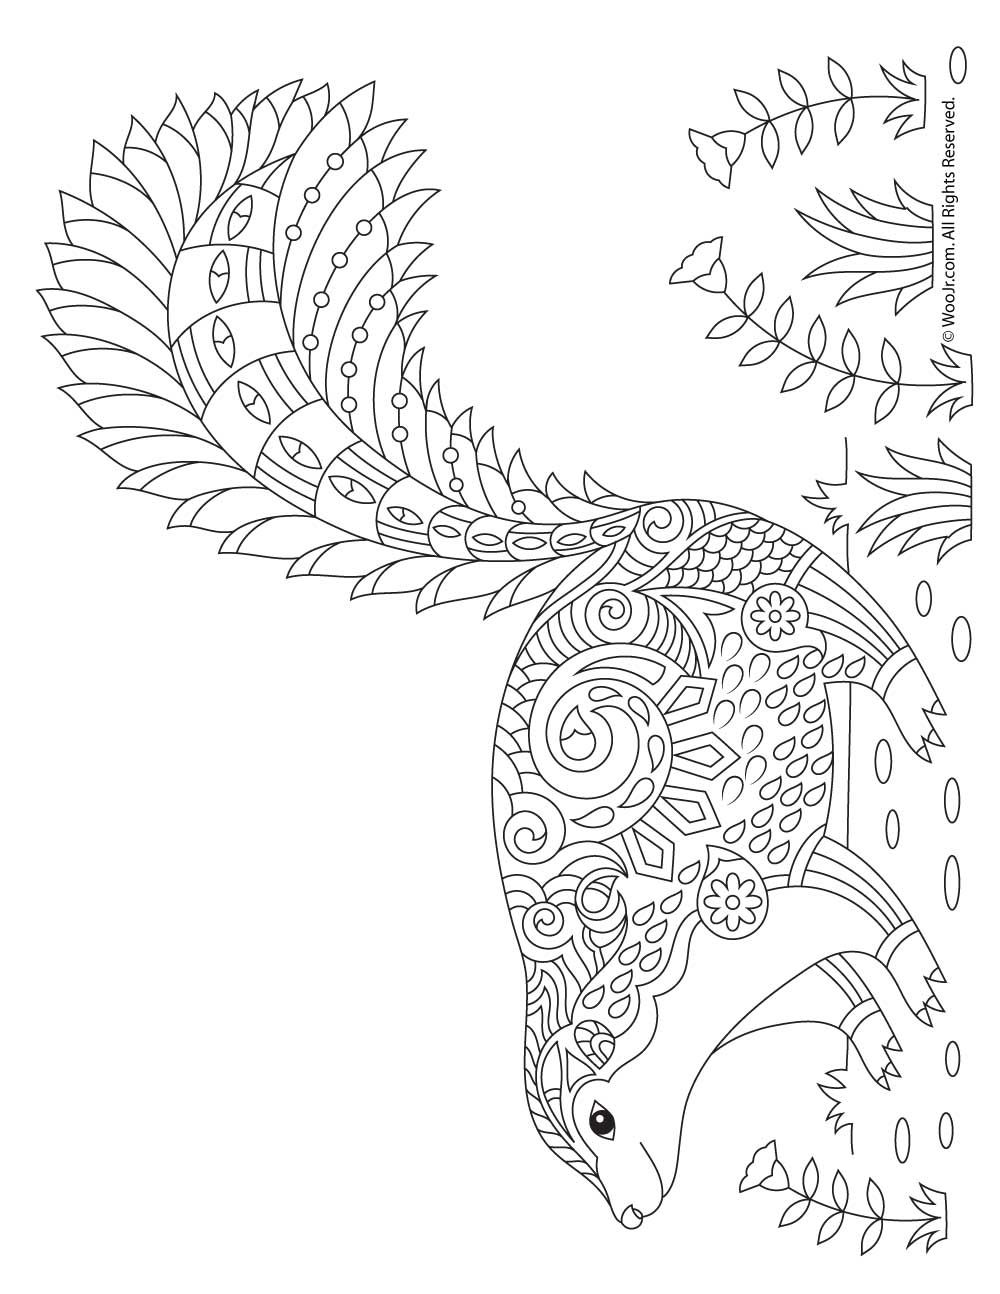 Pin By Kathryn Decosta On March 18-22   Adult Coloring